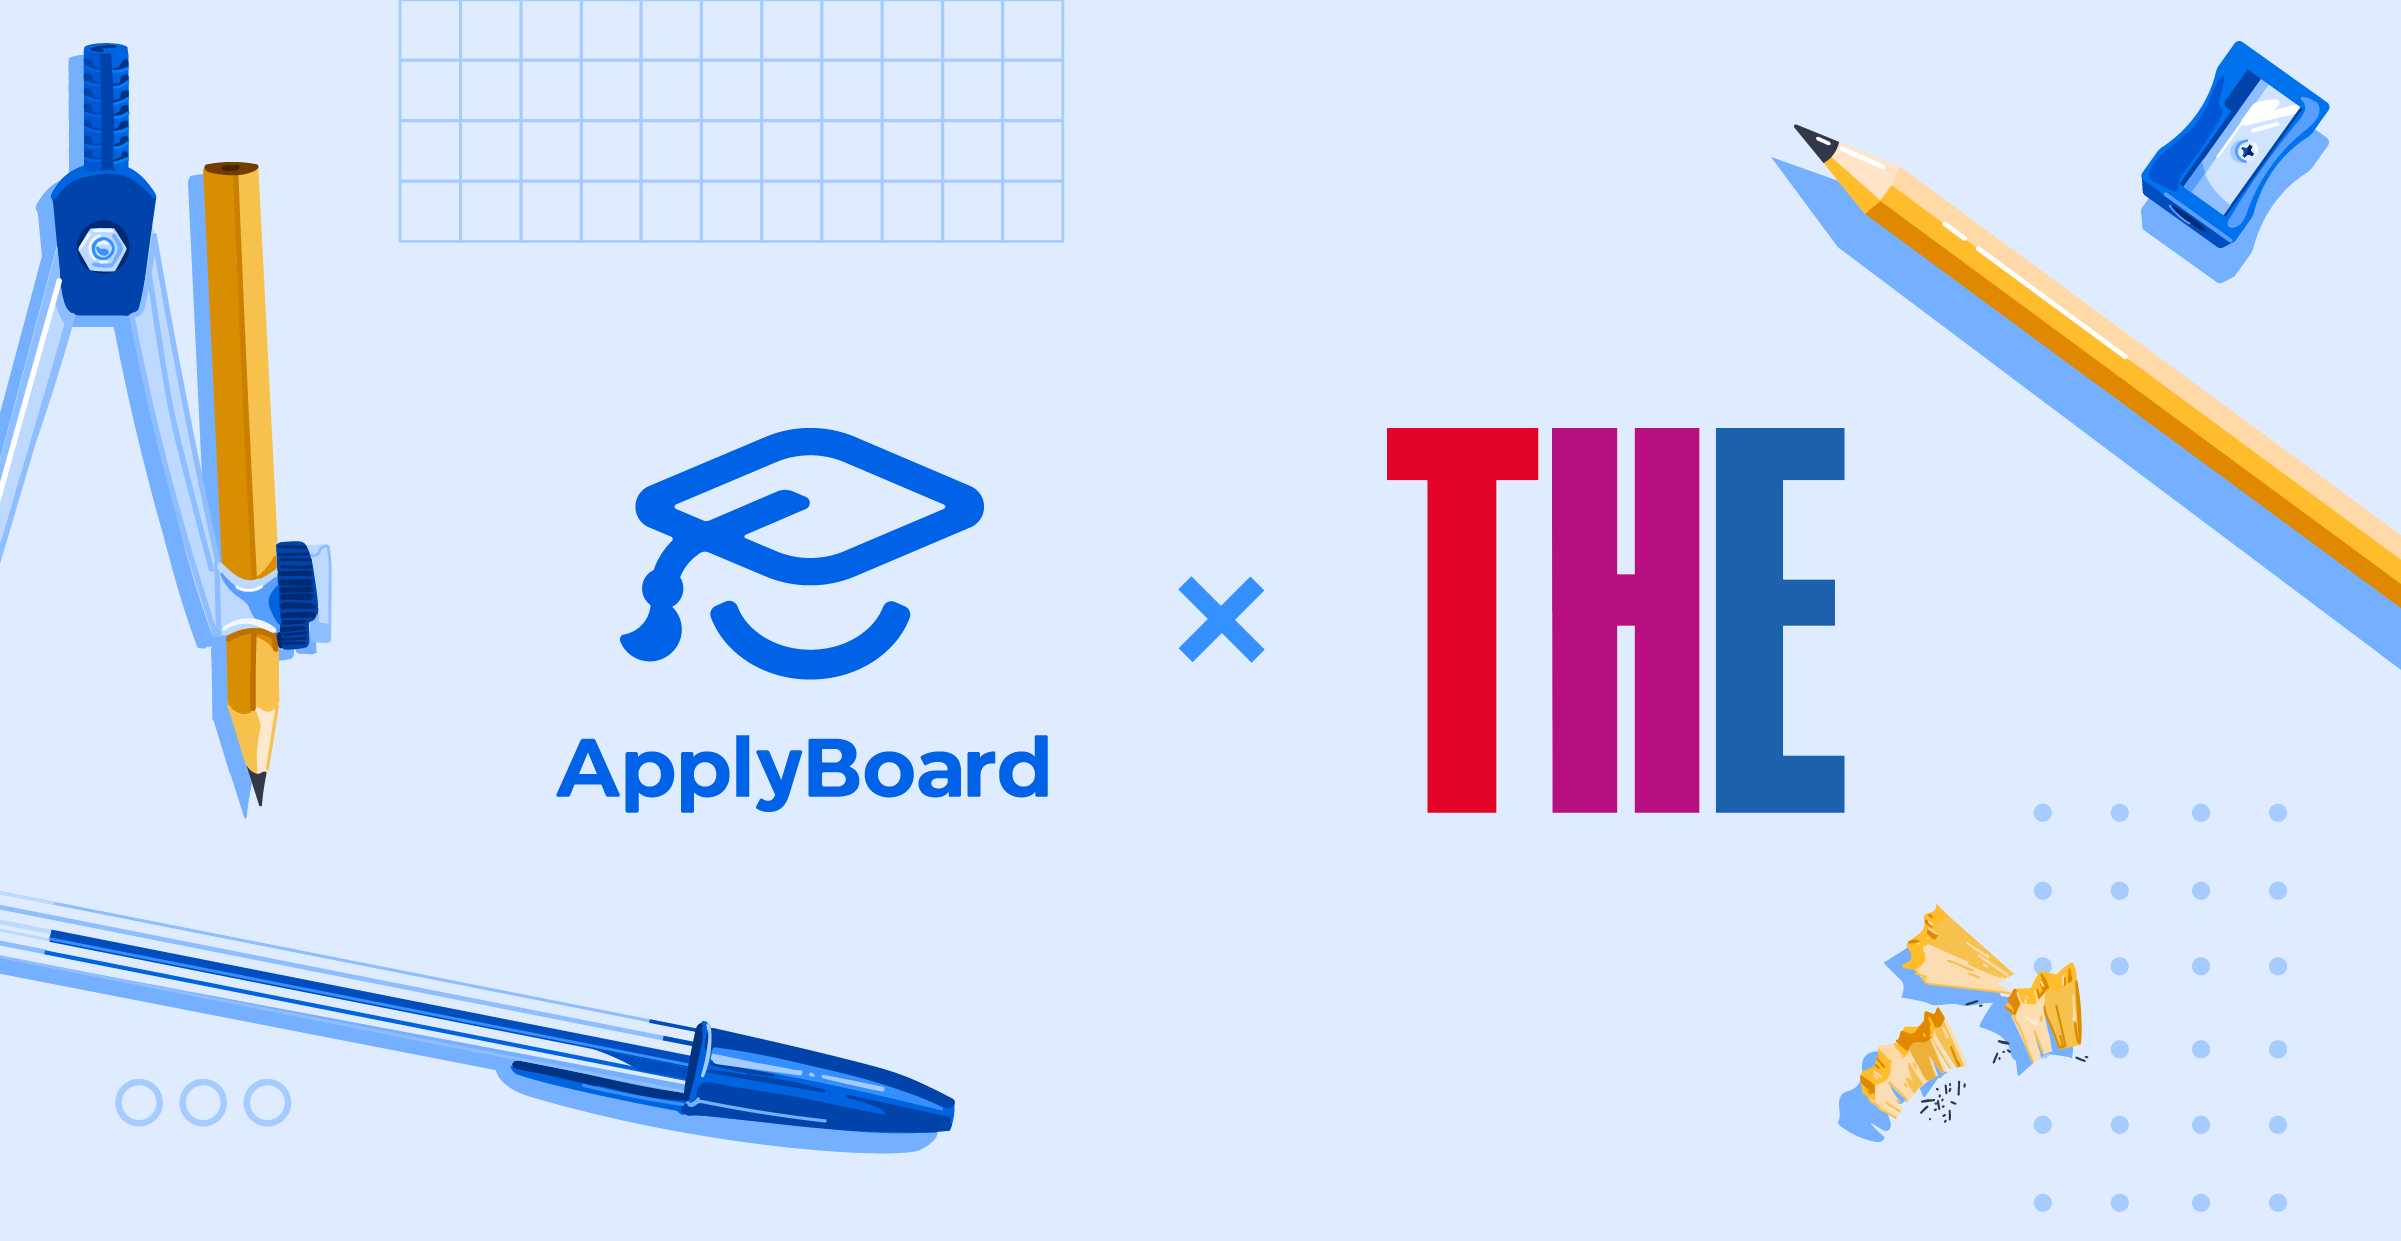 Illustration showing ApplyBoard and Times Higher Education and school supplies